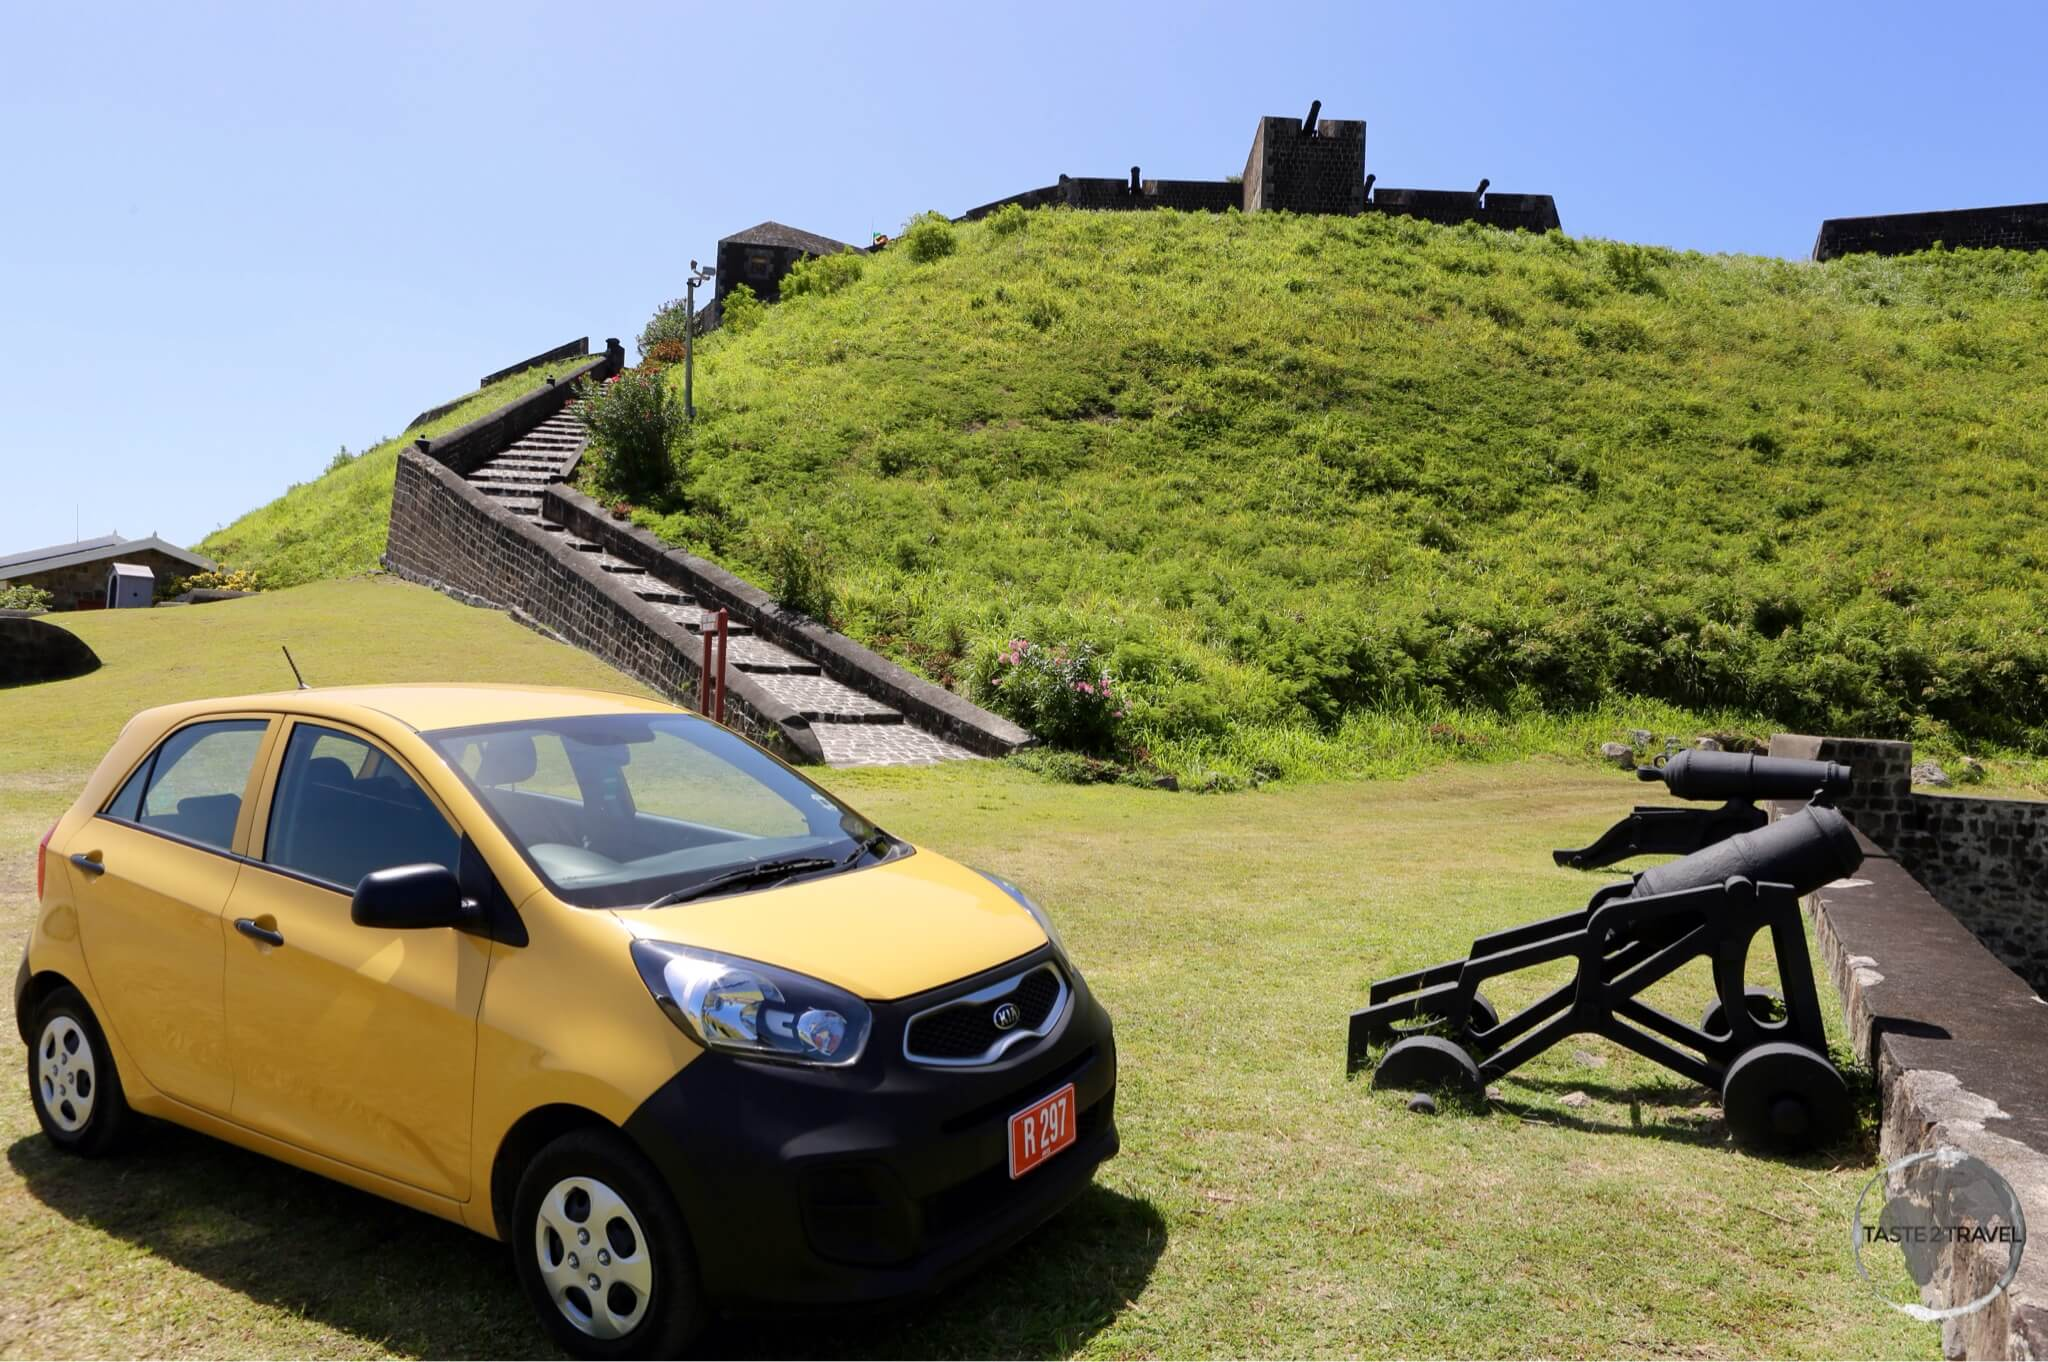 Hire car is a great way to explore both islands. My car parked at Brimstone Hill fortress.